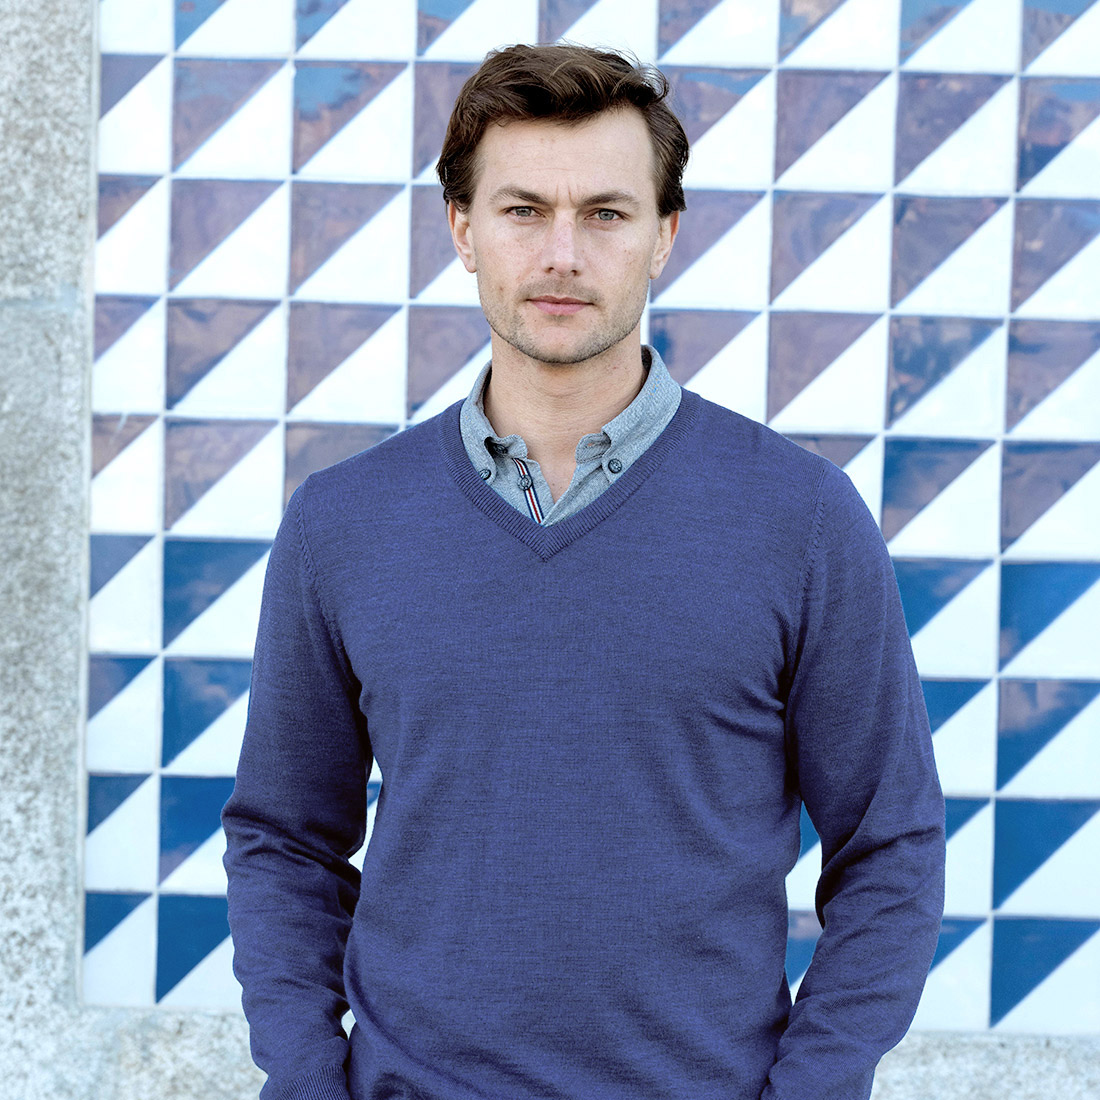 Men's v-neck pullover made from pure Merino wool